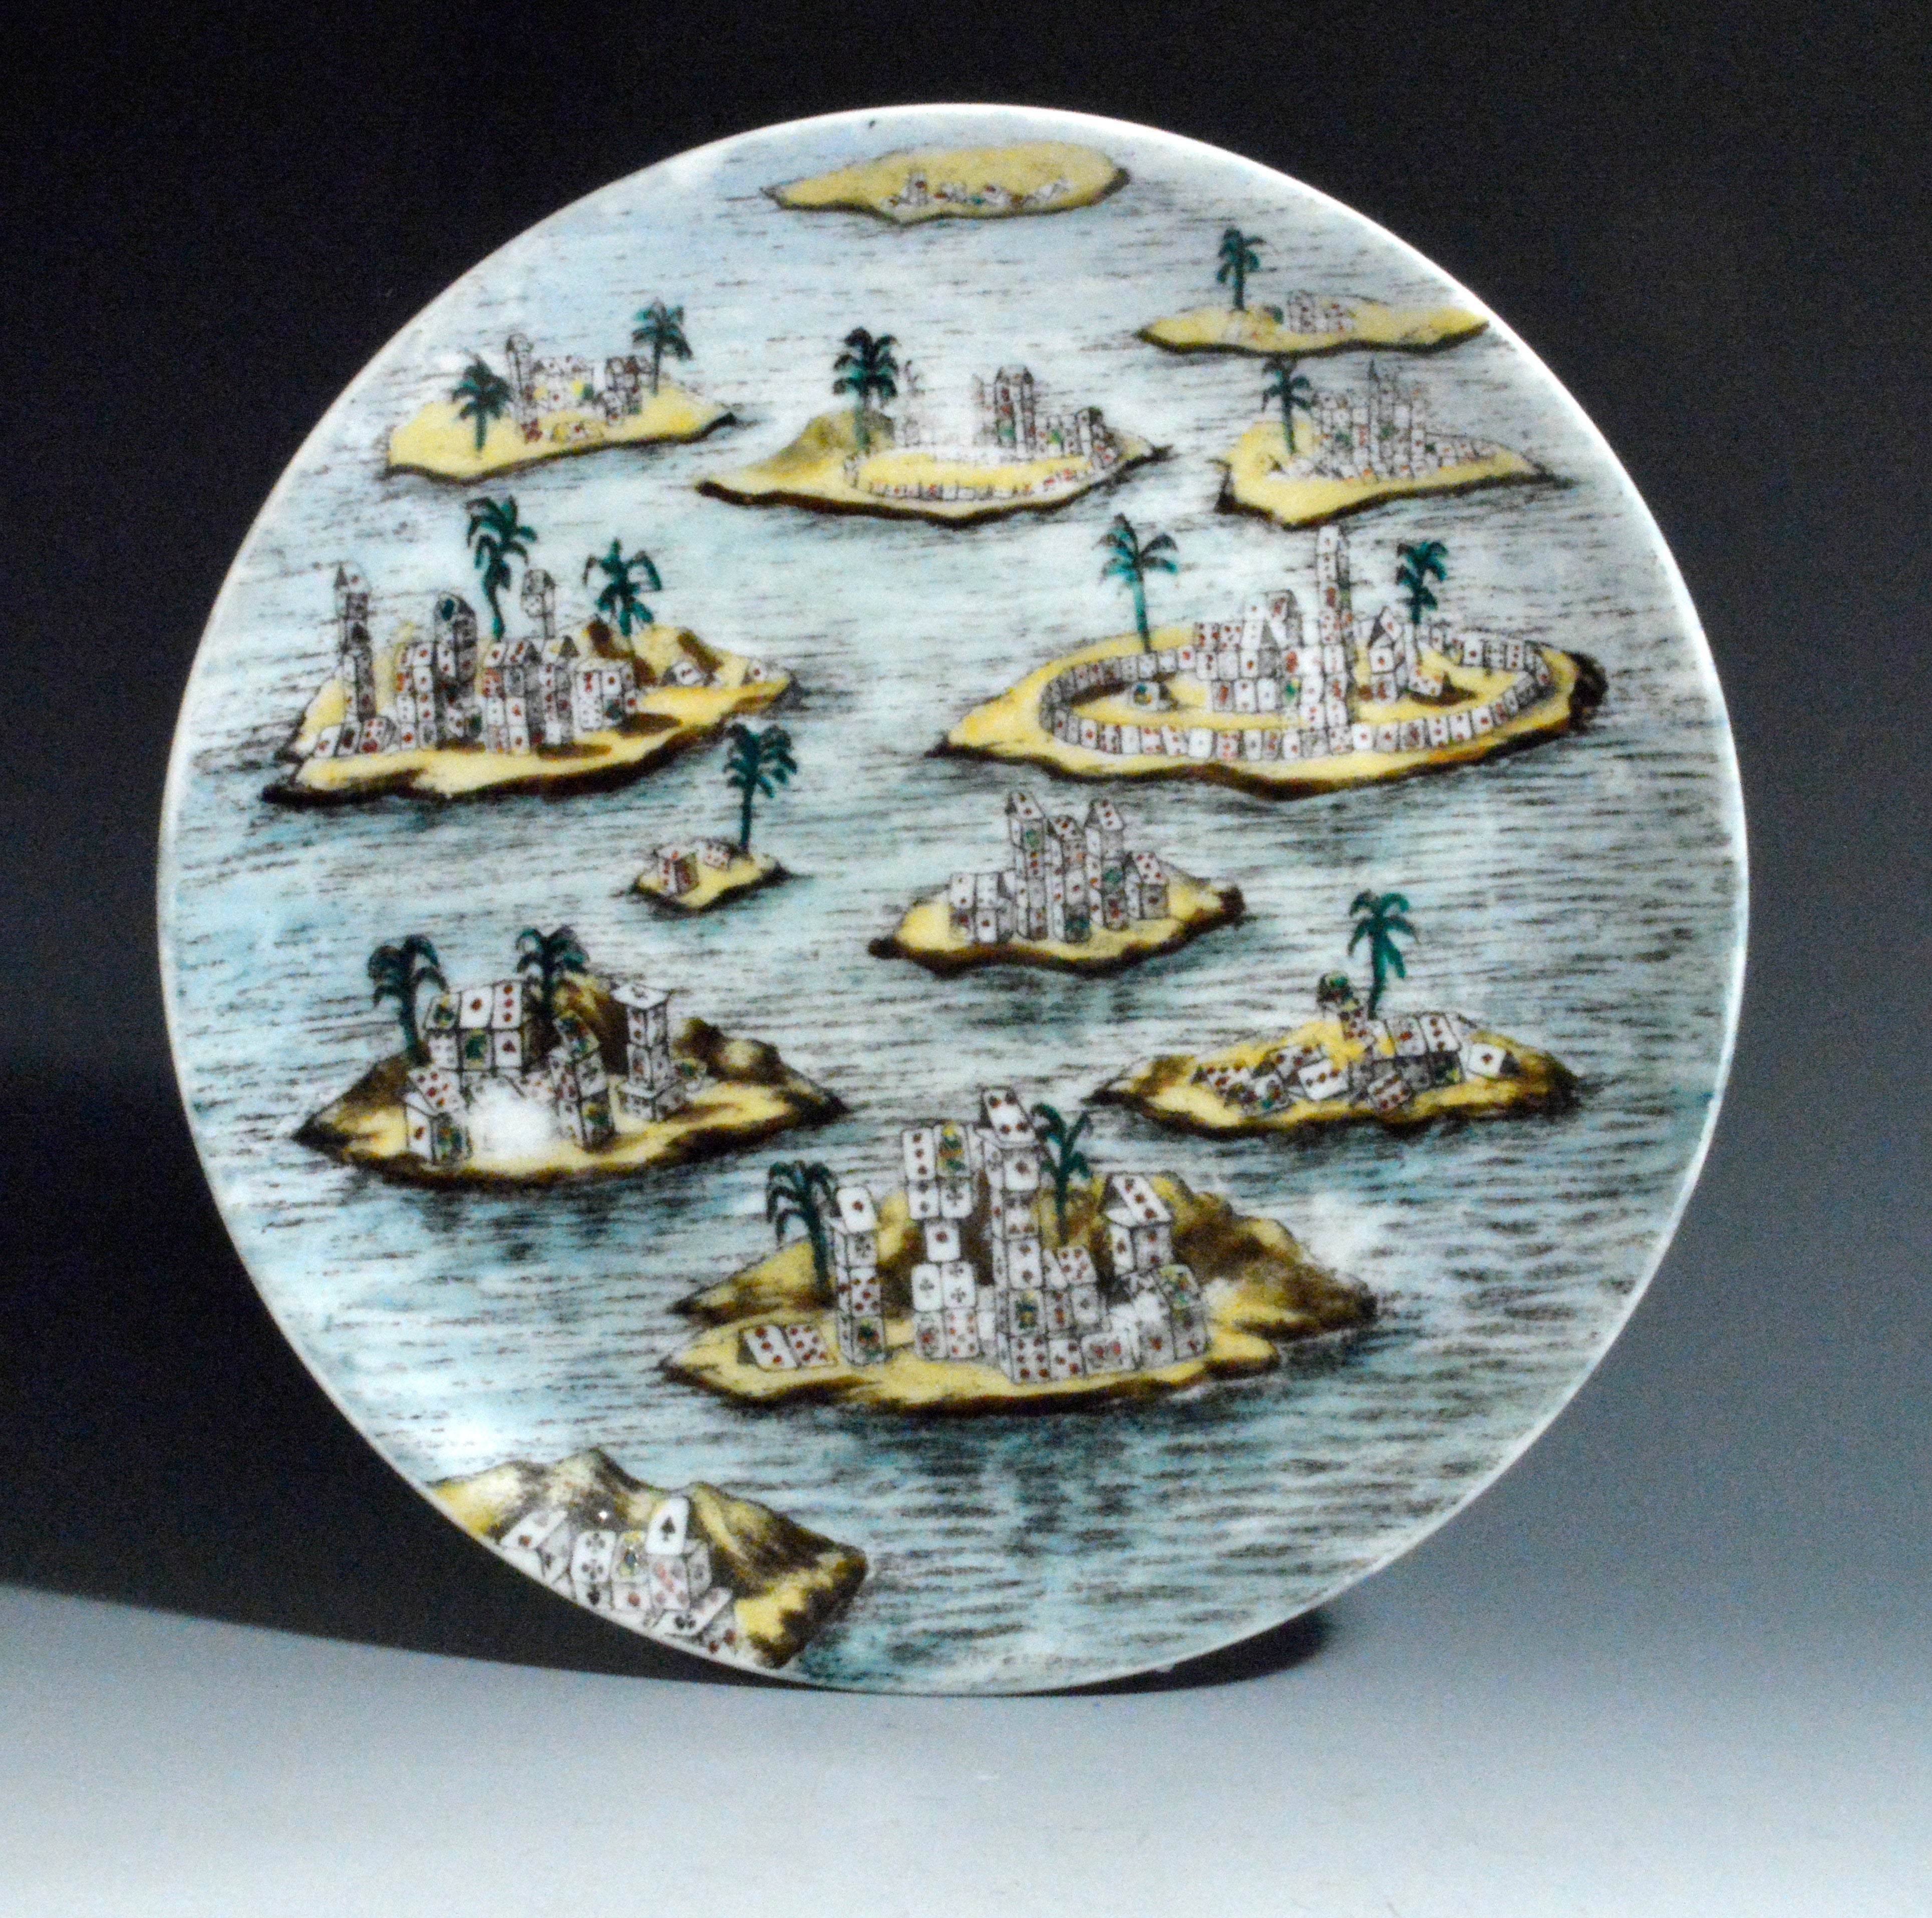 Fornasetti Plates For Sale